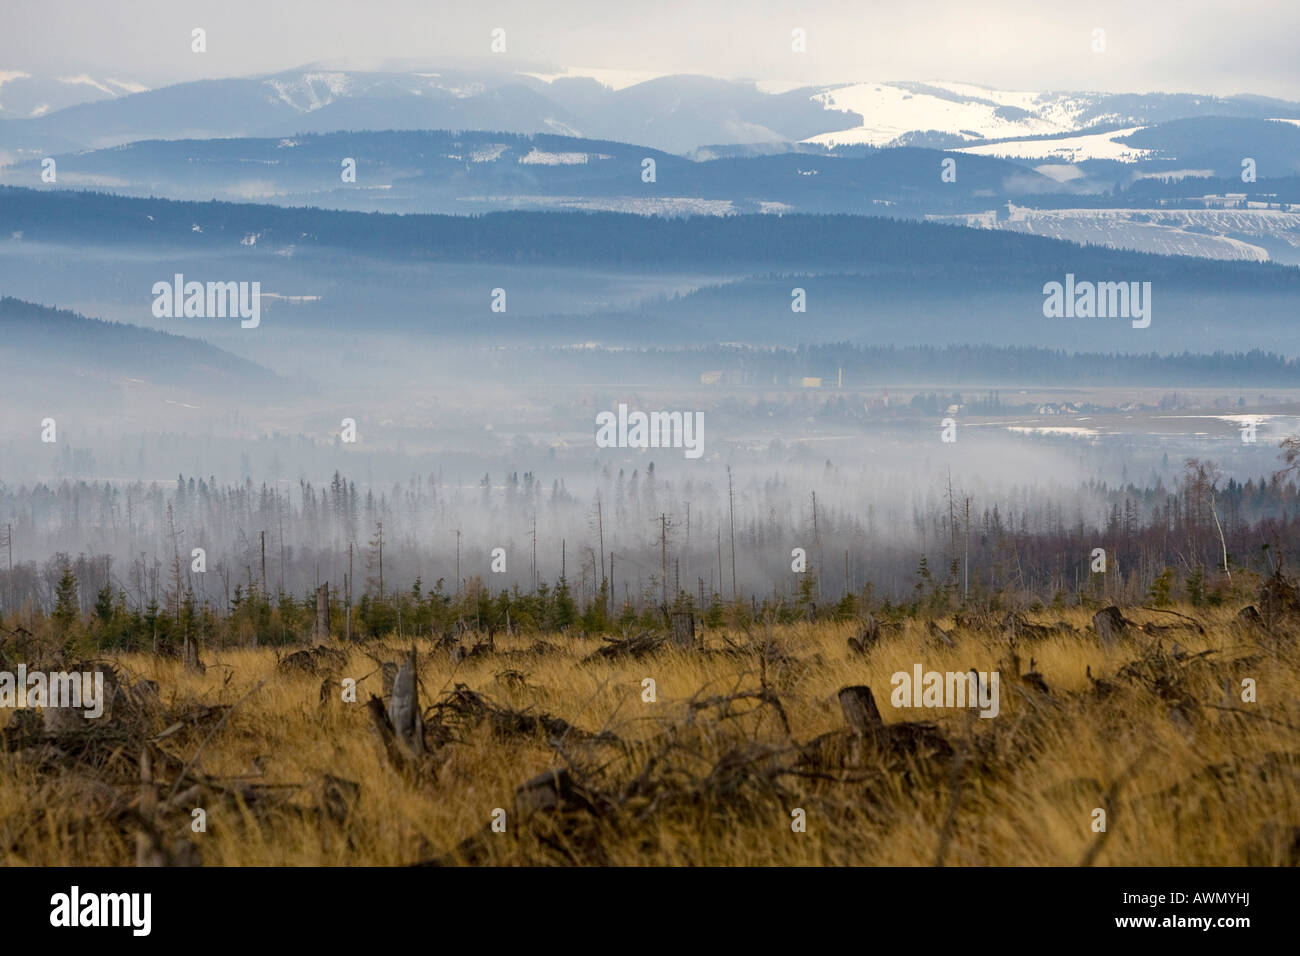 Environmental damage caused by storms and forest fires in 2005, High Tatras, Slovakia, Europe - Stock Image